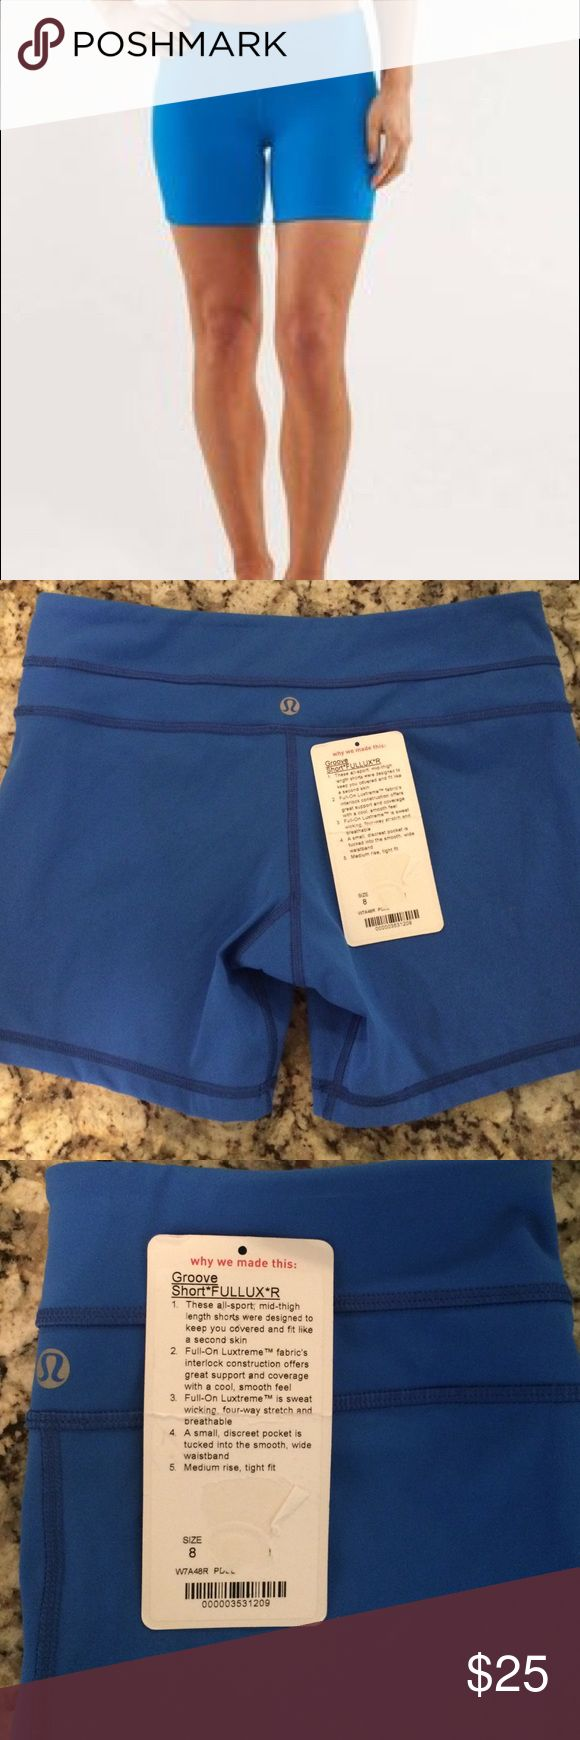 LIKE NEW! w/tag lululemon groove short*Fullux*R, 8 Worn only 2x washed gentle hung dry. These are in perfect condition. Blue color size 8 full lux groove shorts like new! smoke free home lululemon athletica Shorts